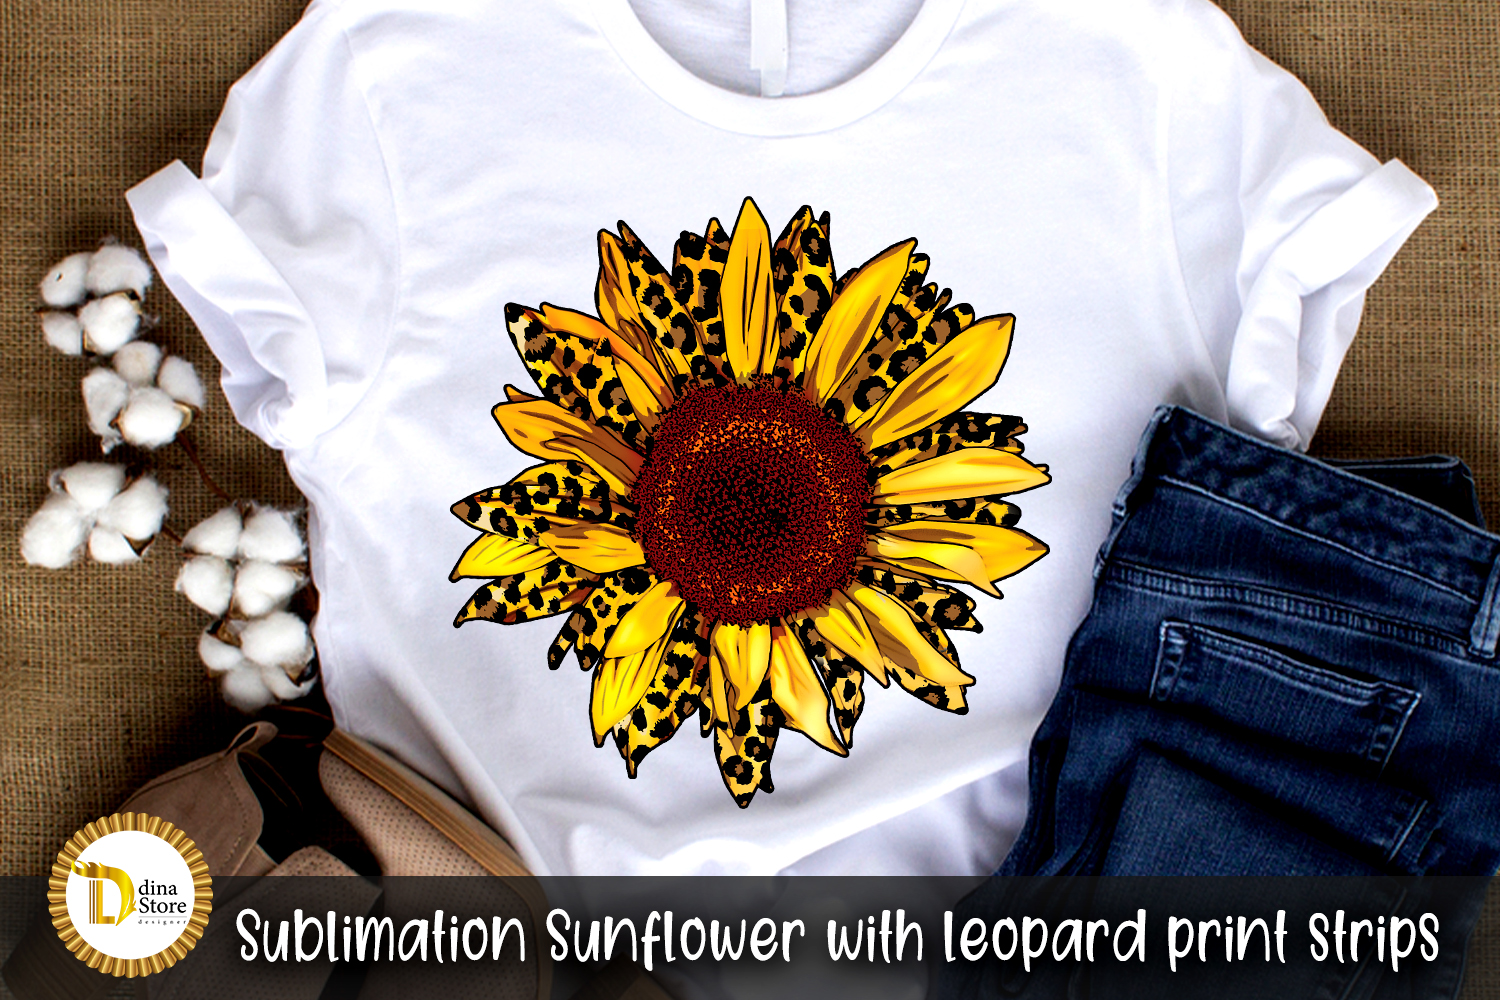 Sublimation Sunflower with Leopard Print SVG File